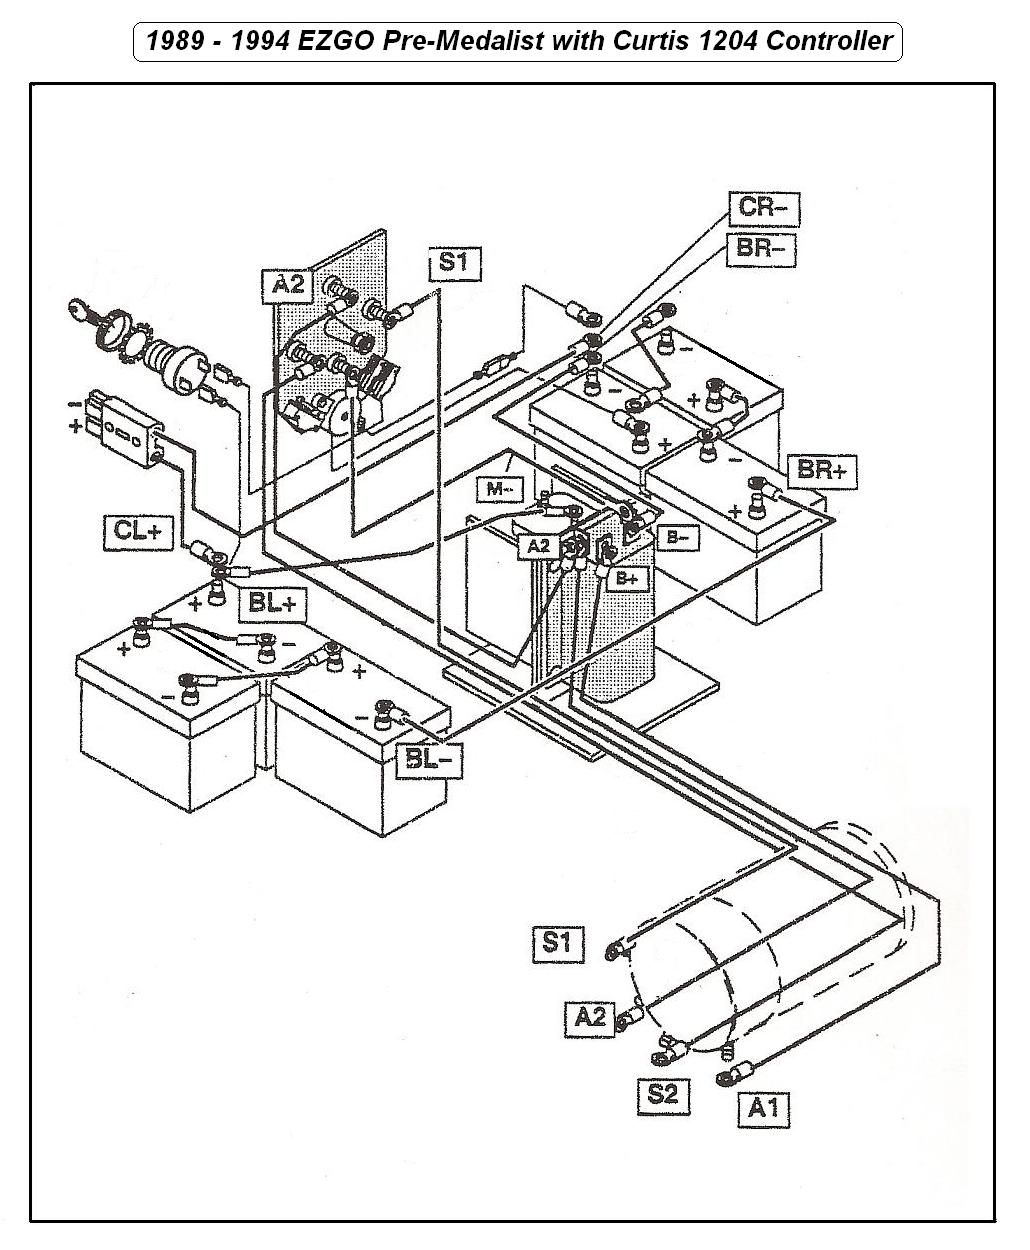 A89_94EZ_Wiring ezgo wiring diagram ez wiring \u2022 wiring diagrams j squared co ezgo controller wiring diagram at panicattacktreatment.co